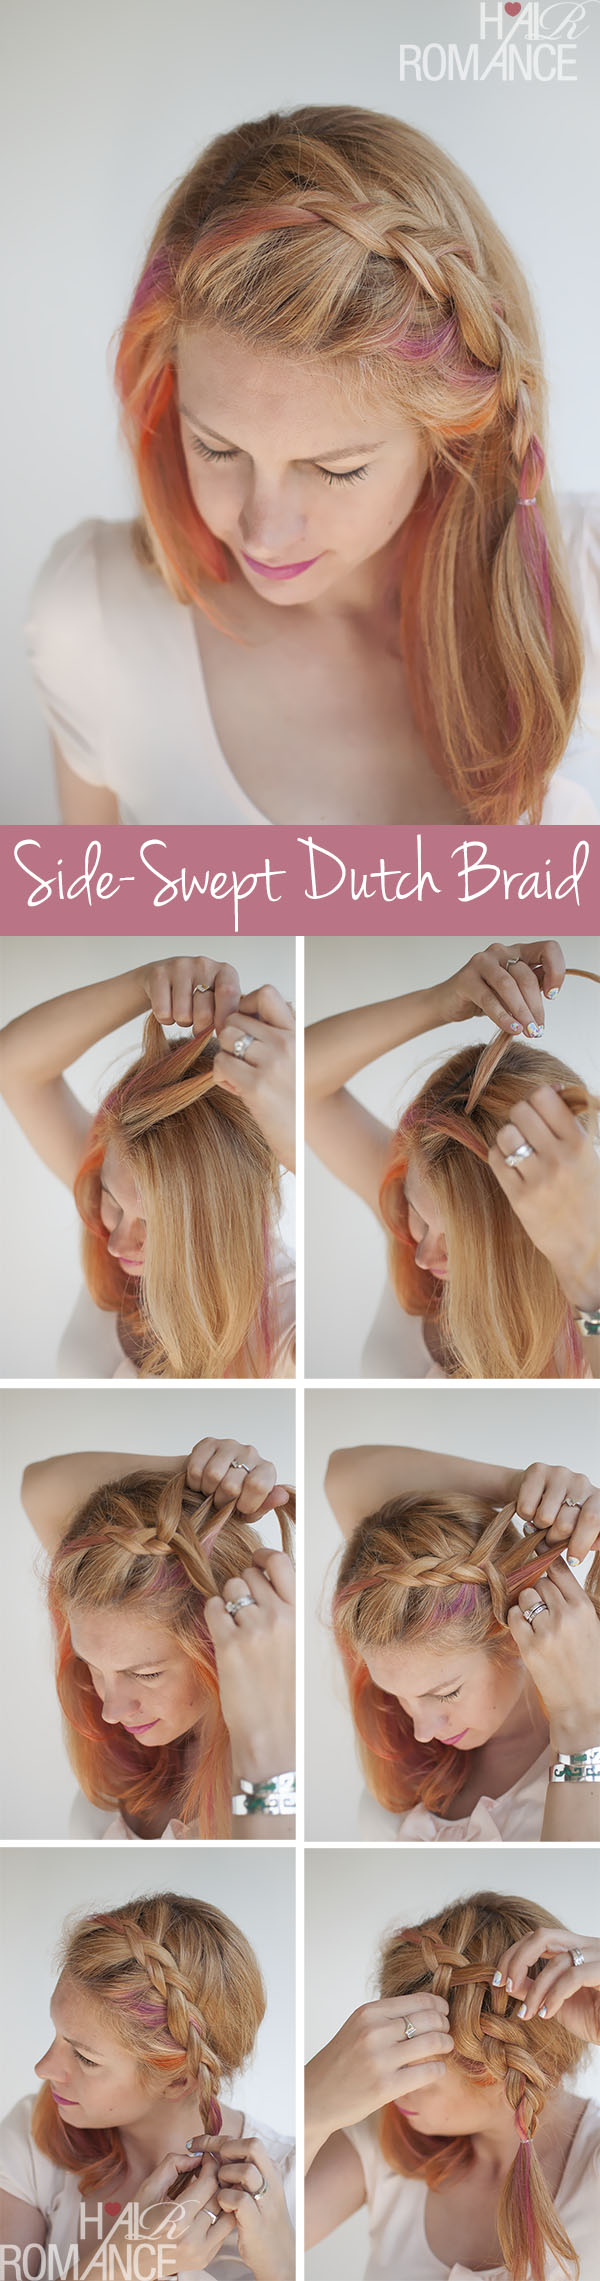 Hairstyle Tutorial How to do Side-Swept Dutch Braid